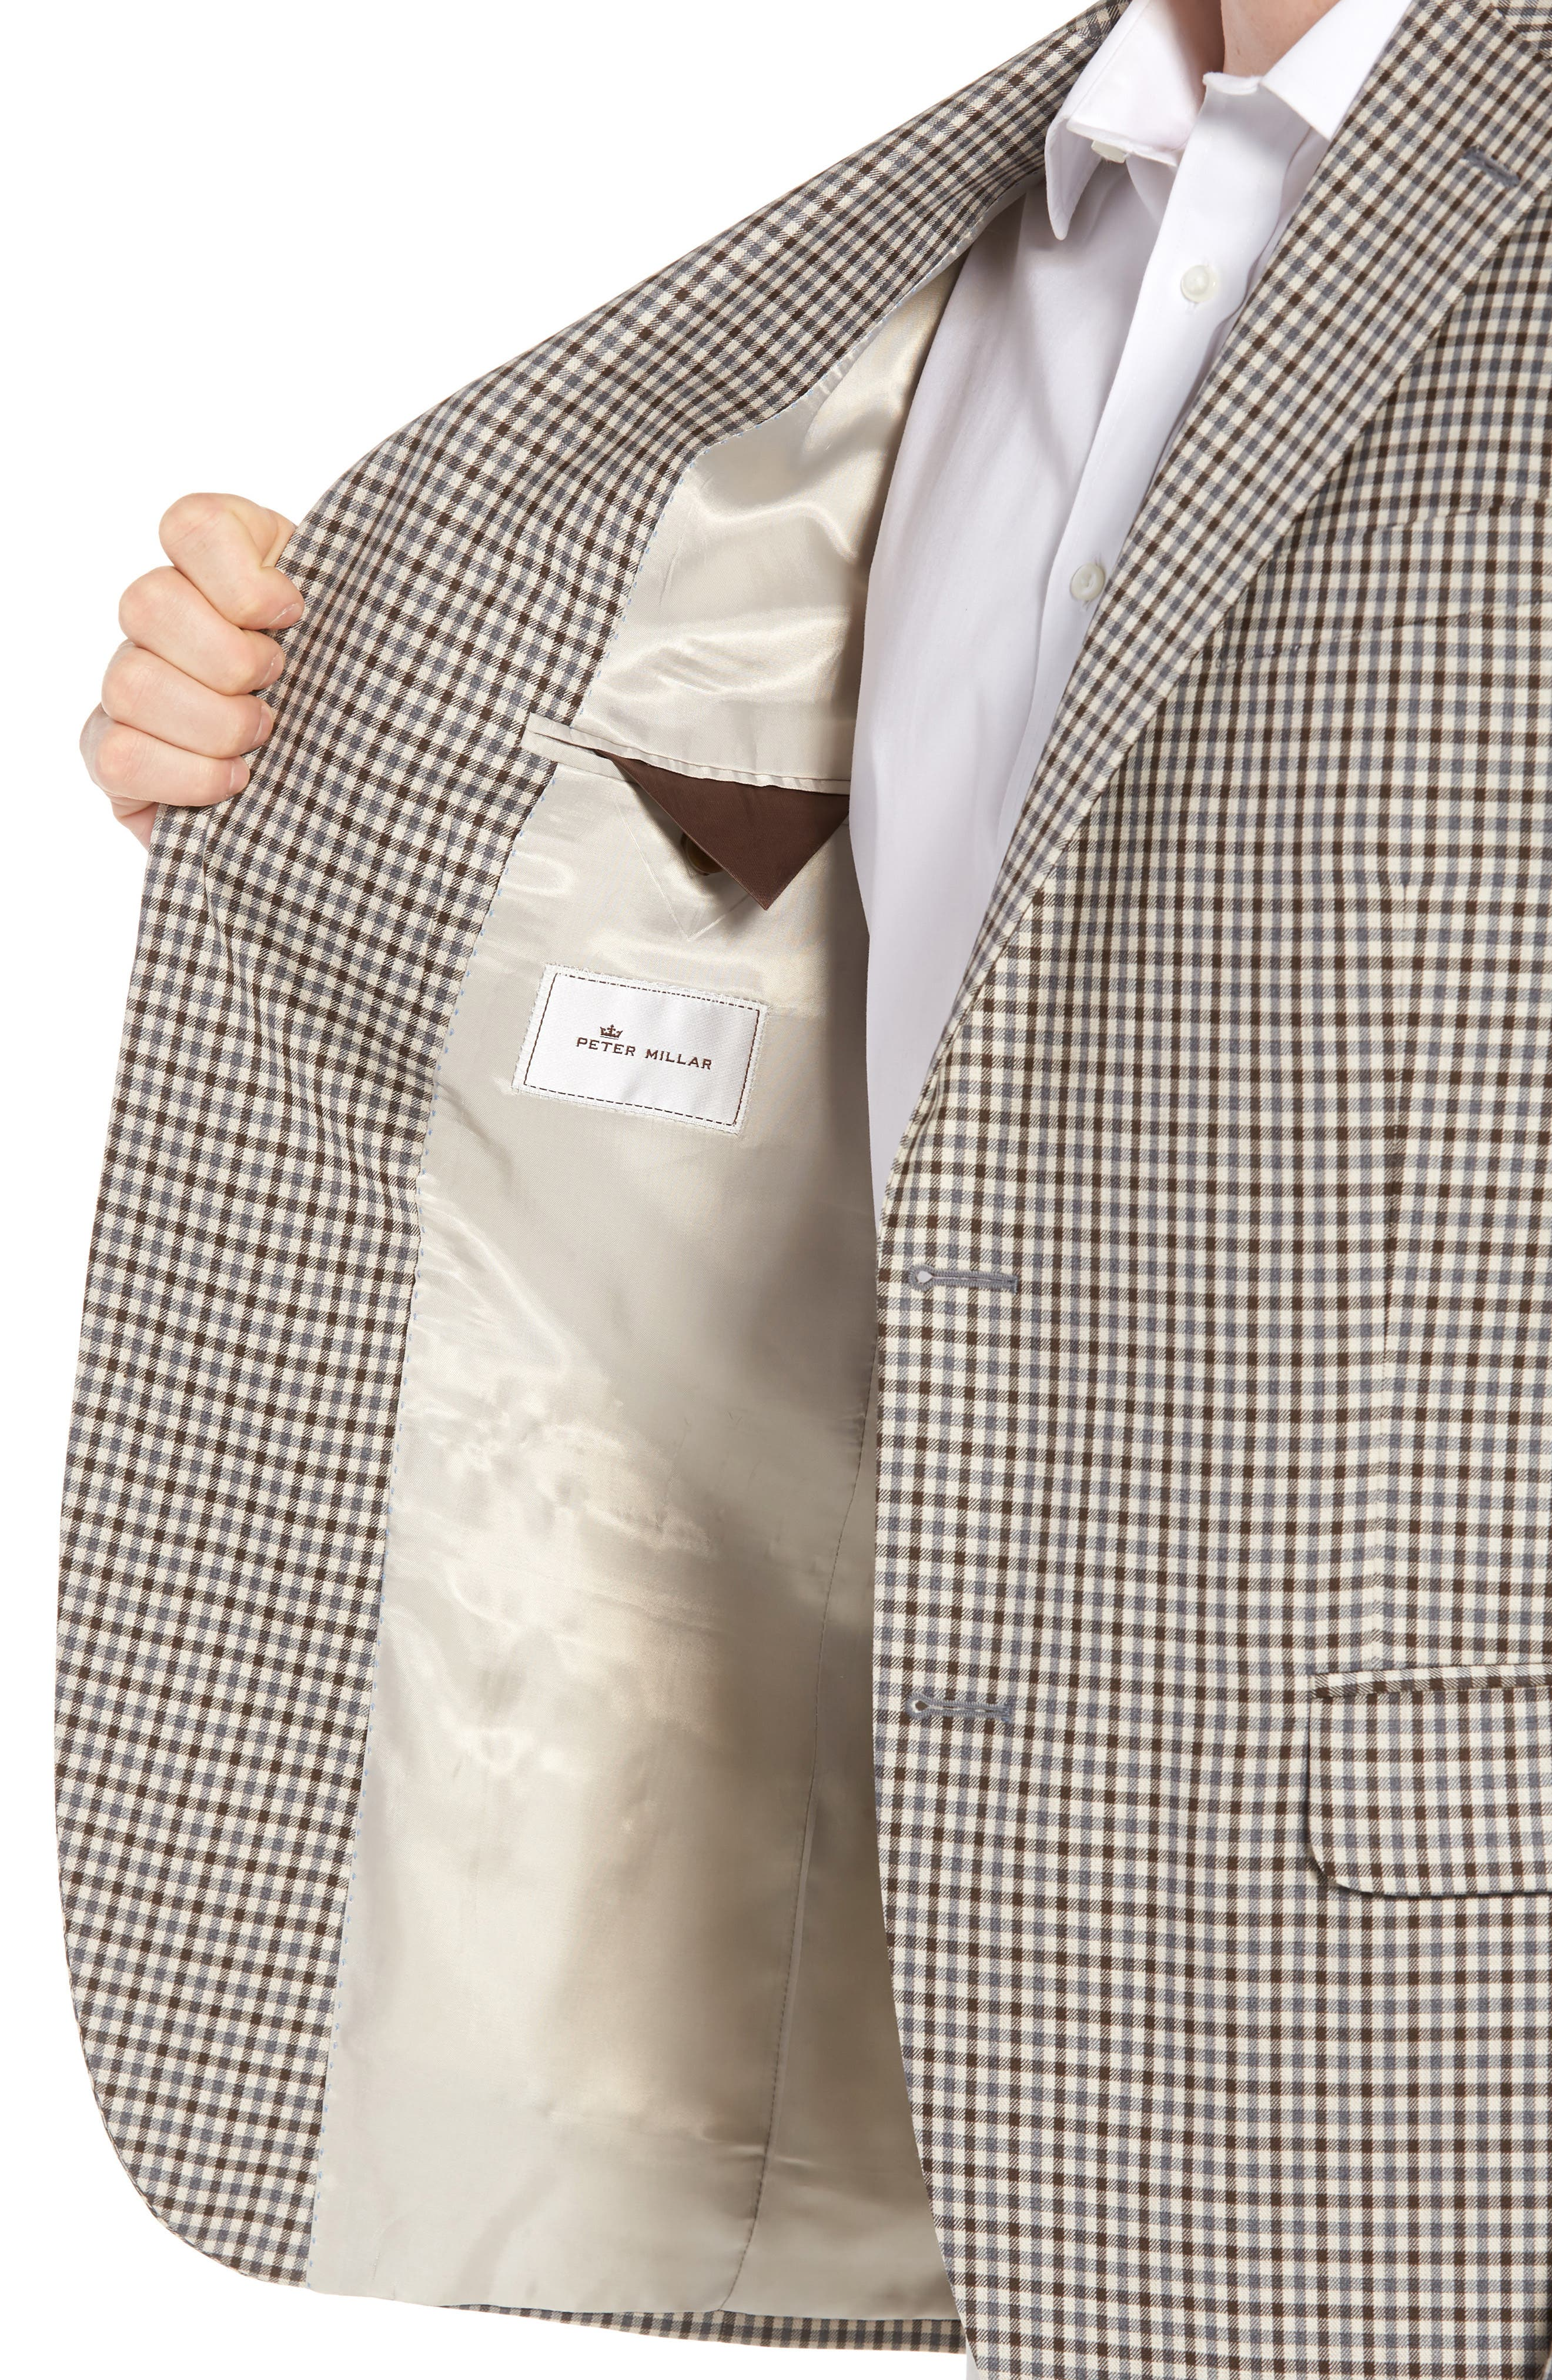 Classic Fit Check Wool Sport Coat,                             Alternate thumbnail 4, color,